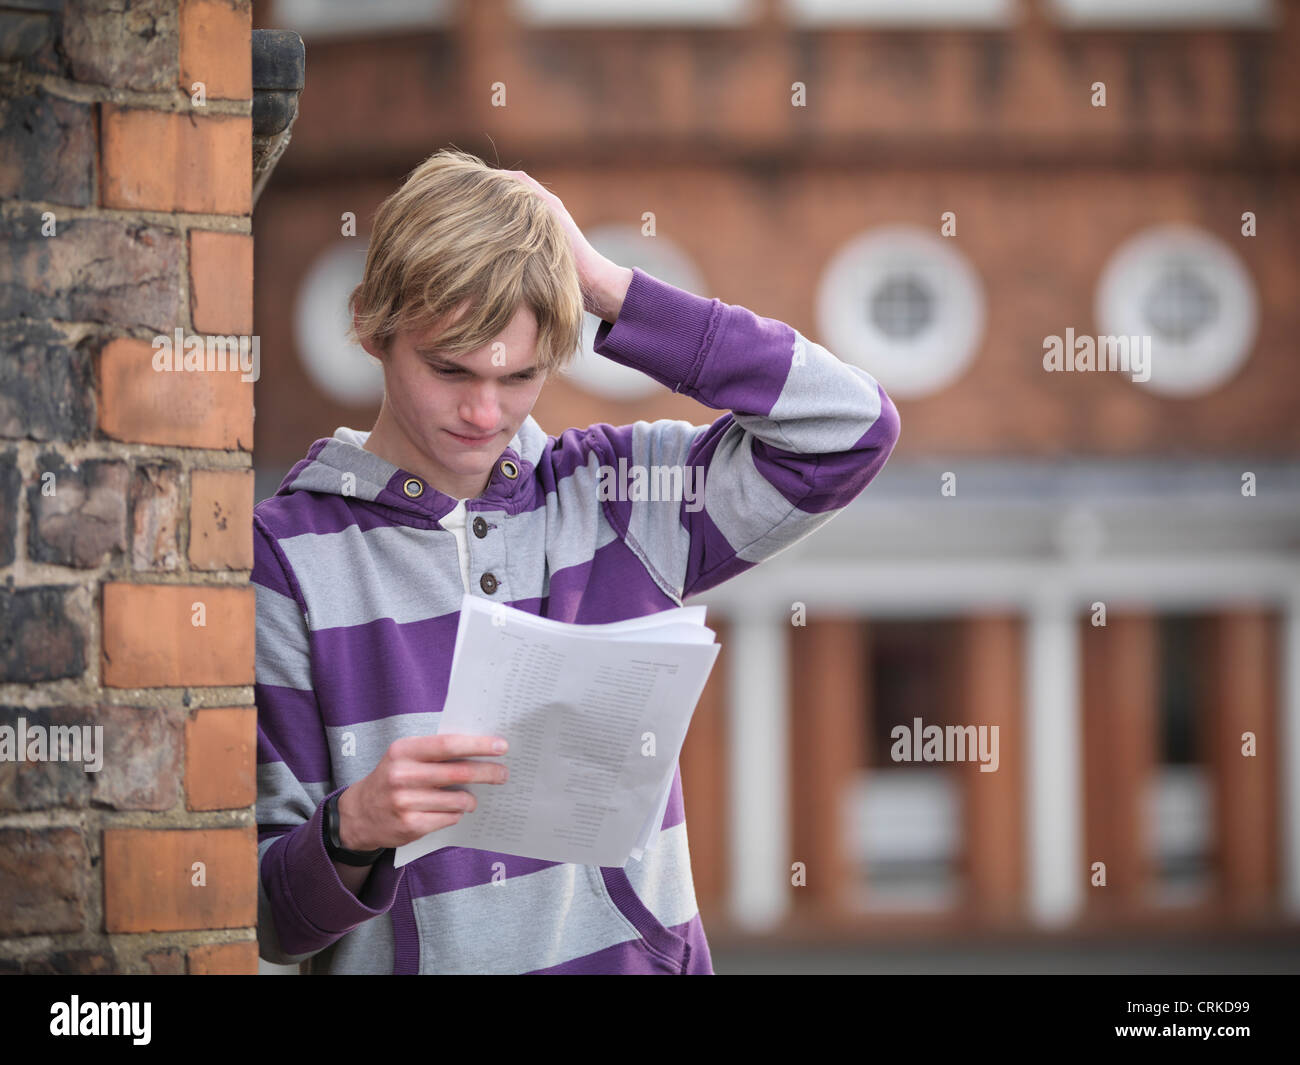 Upset student reading grades at school - Stock Image